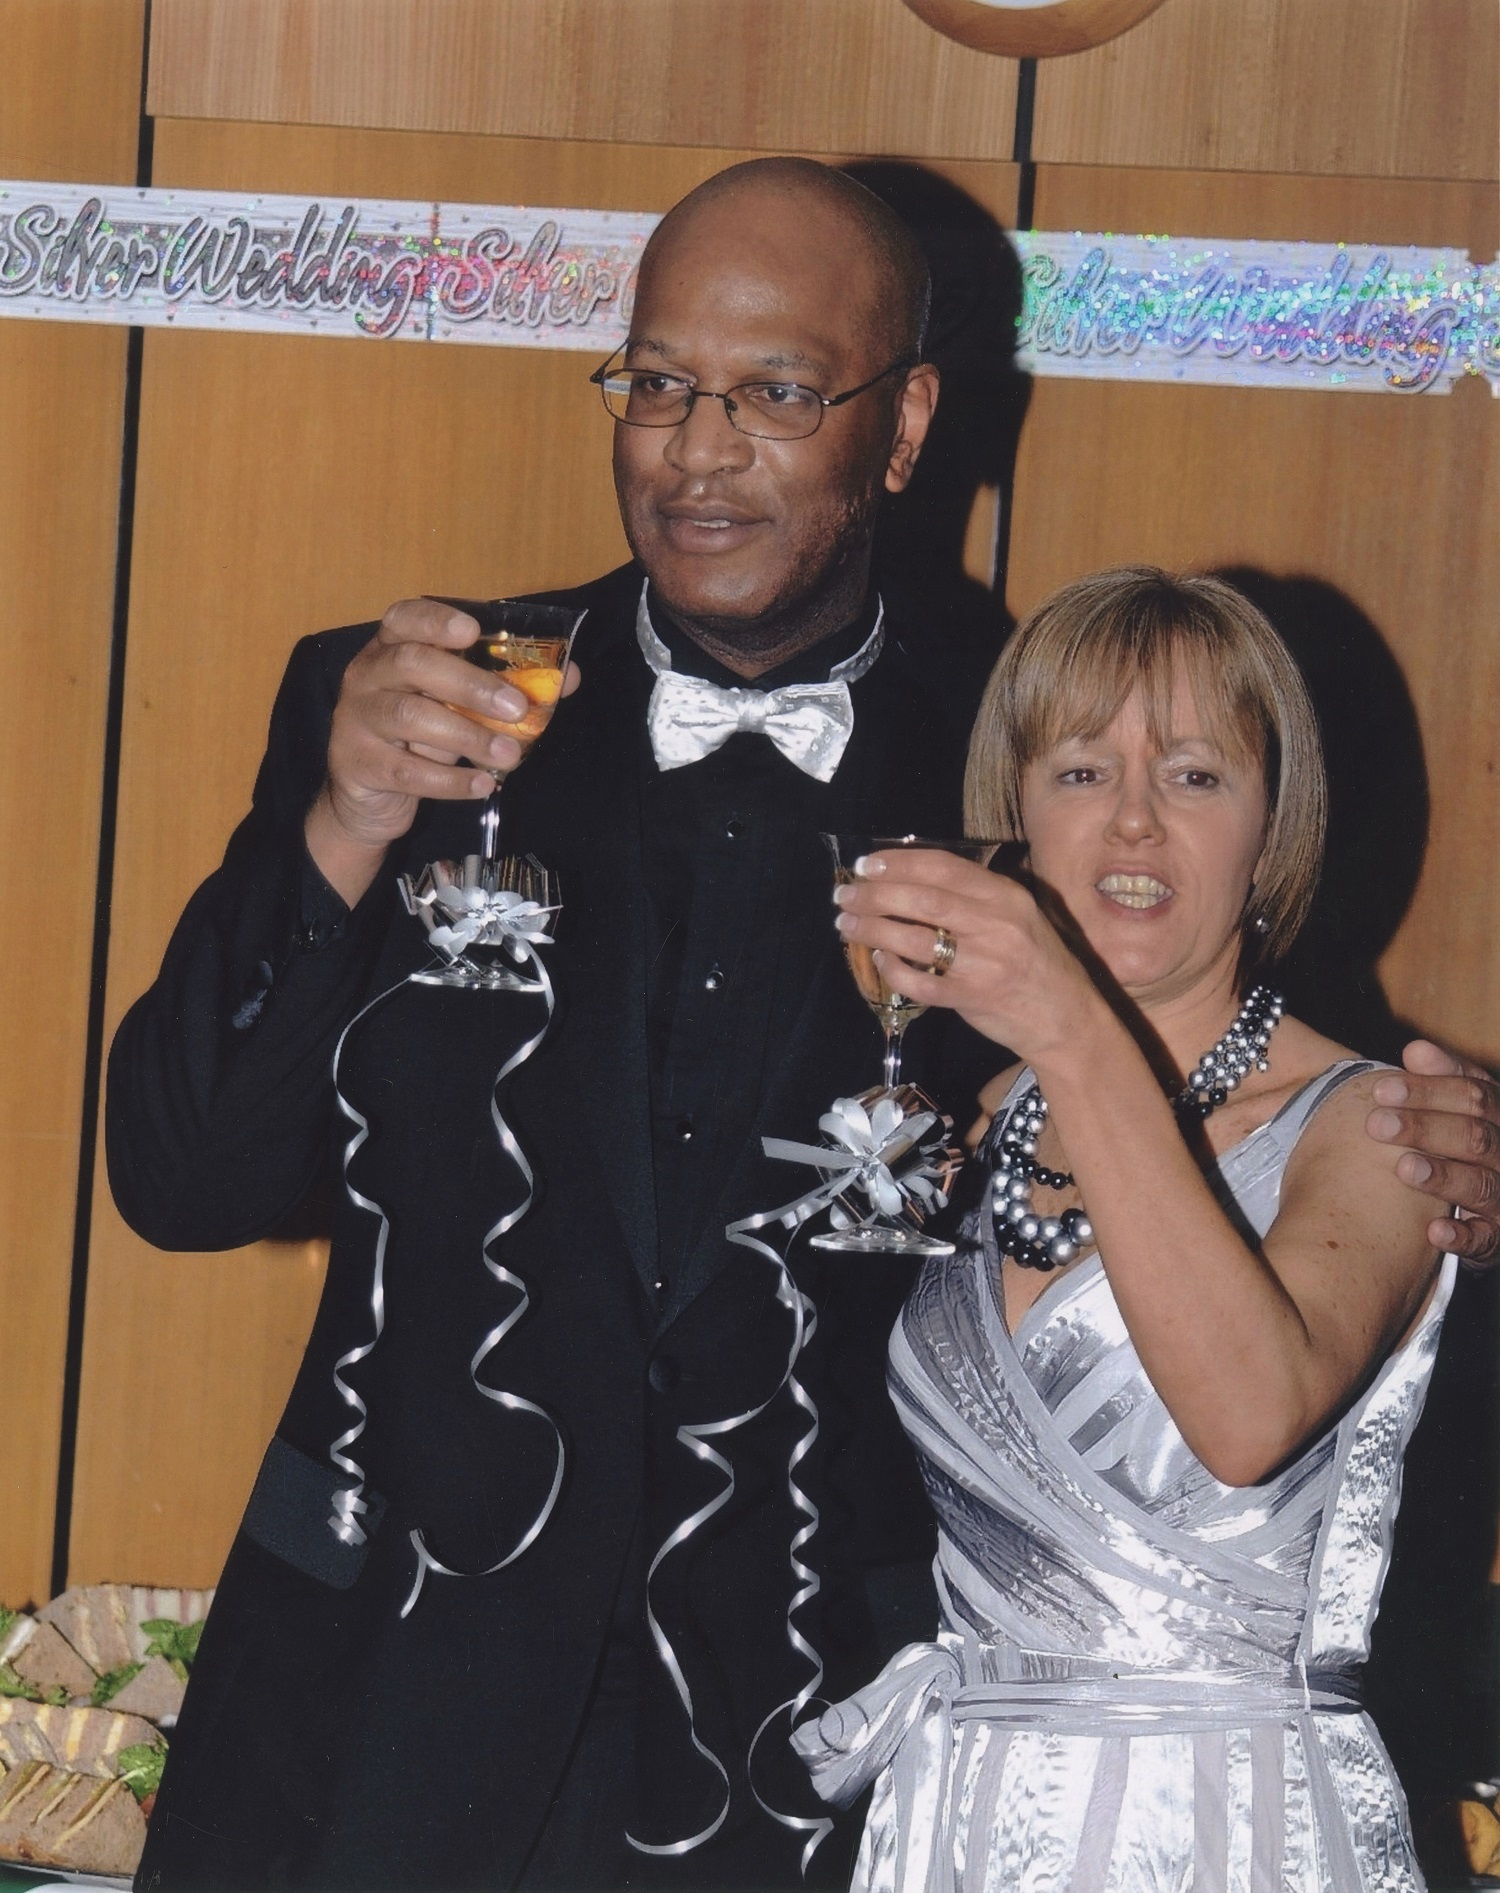 Mixed-race couple of toasting at wedding